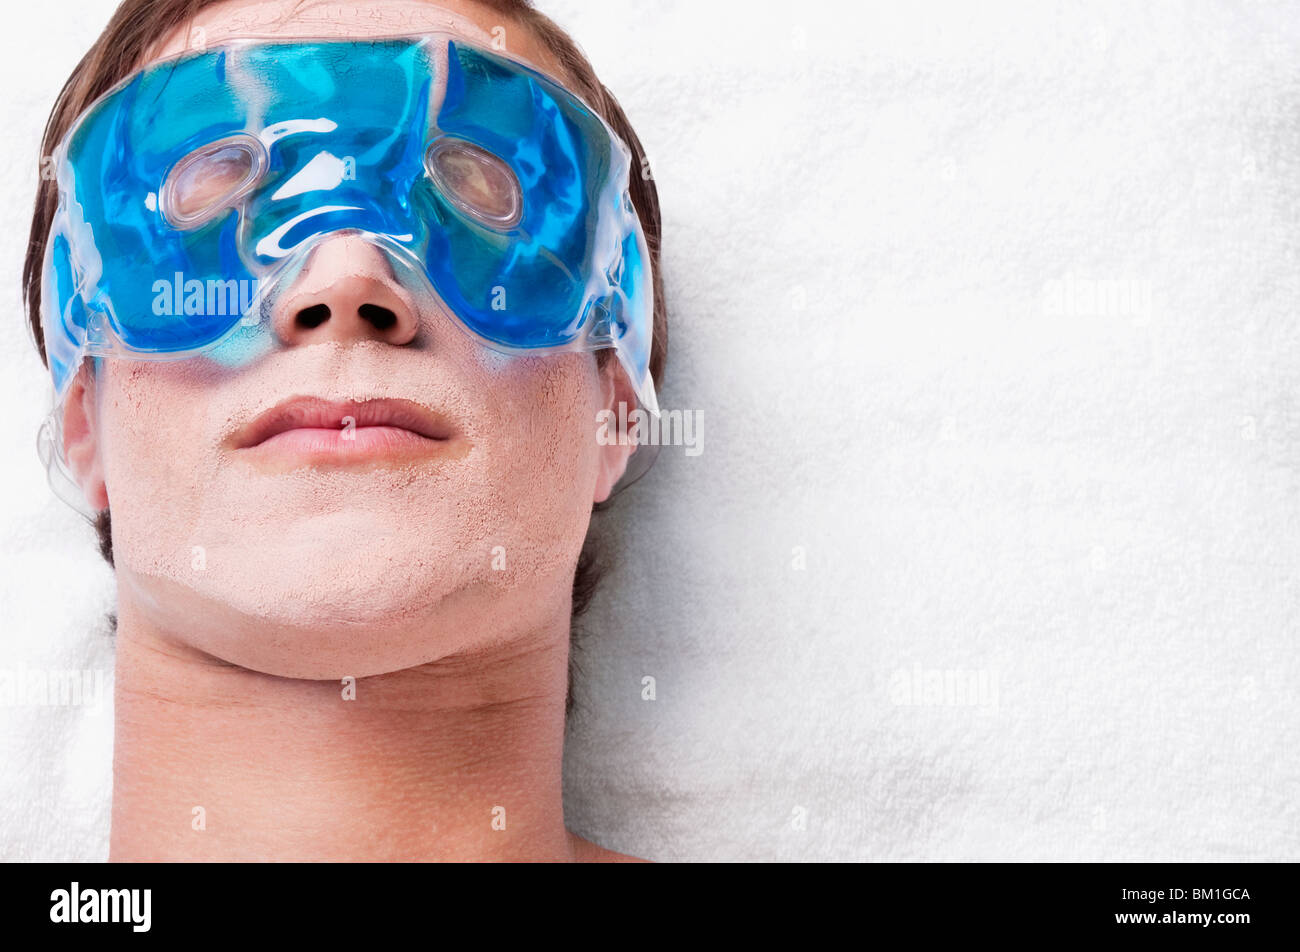 Man wearing eye mask Stock Photo